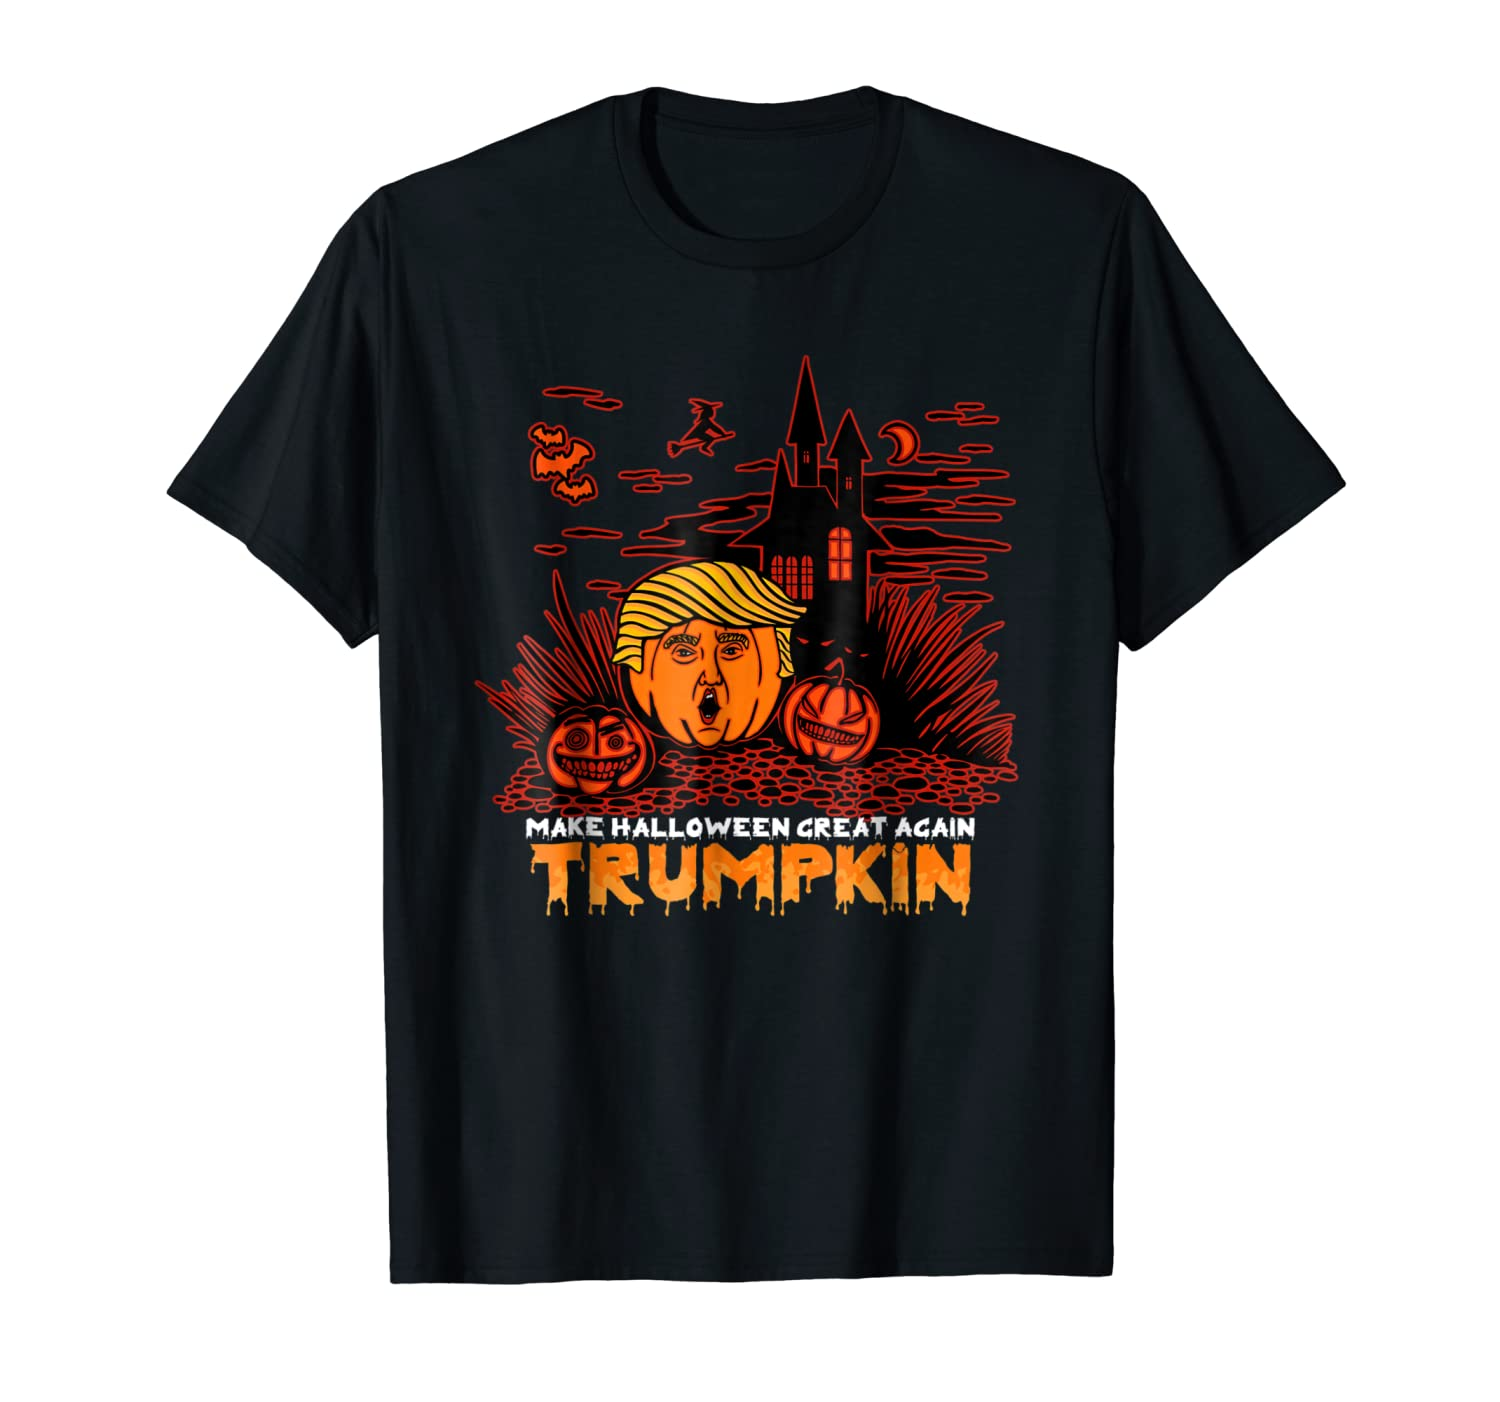 Trumpkin Costume T-shirt Make Halloween Great Again